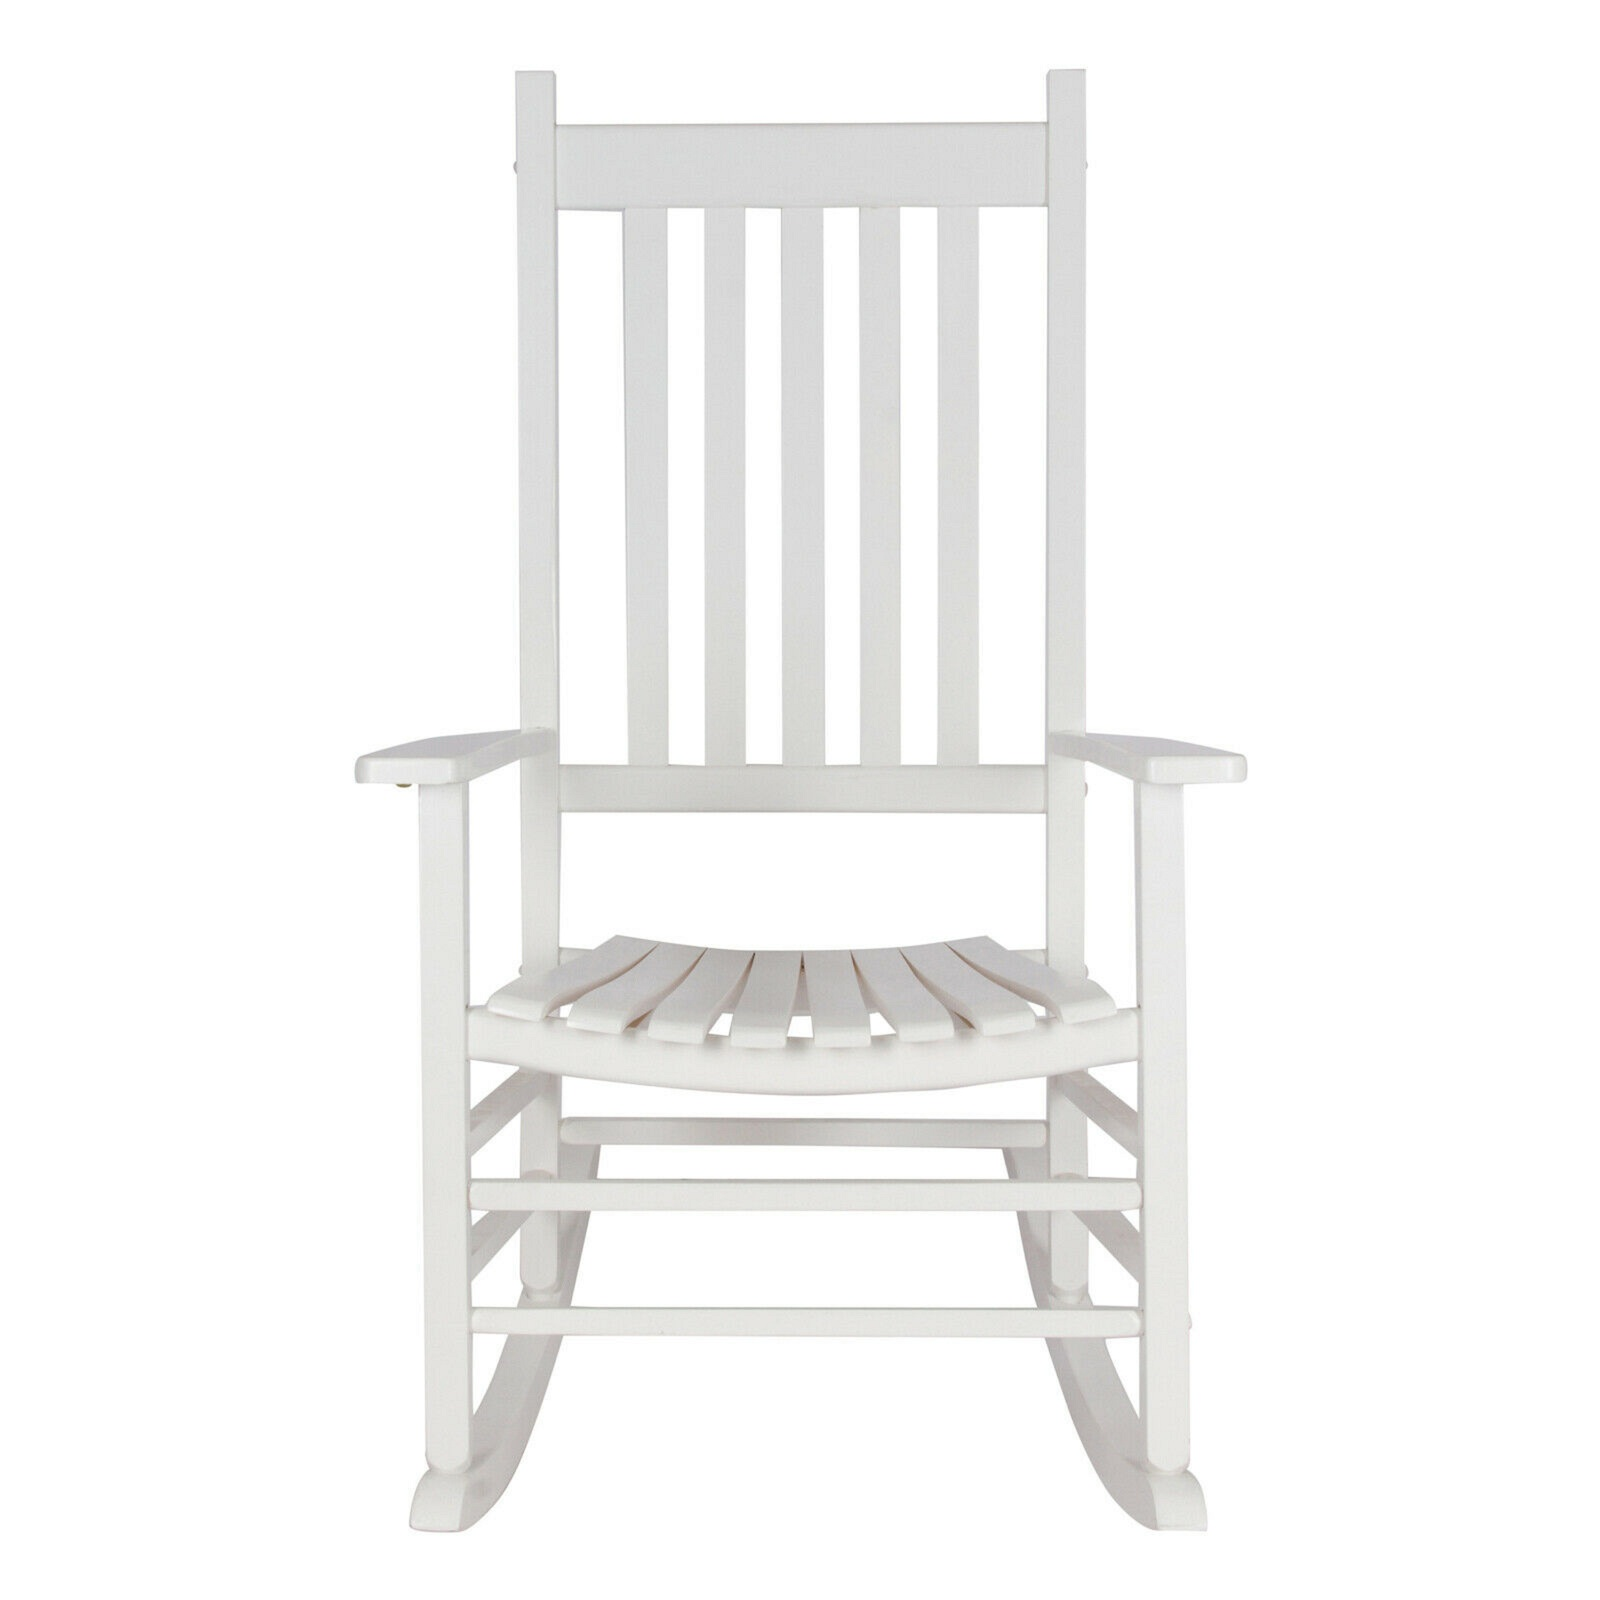 Outdoor Rocking Chair Classic White Traditional Porch Relax Backrest Sturdy Wood